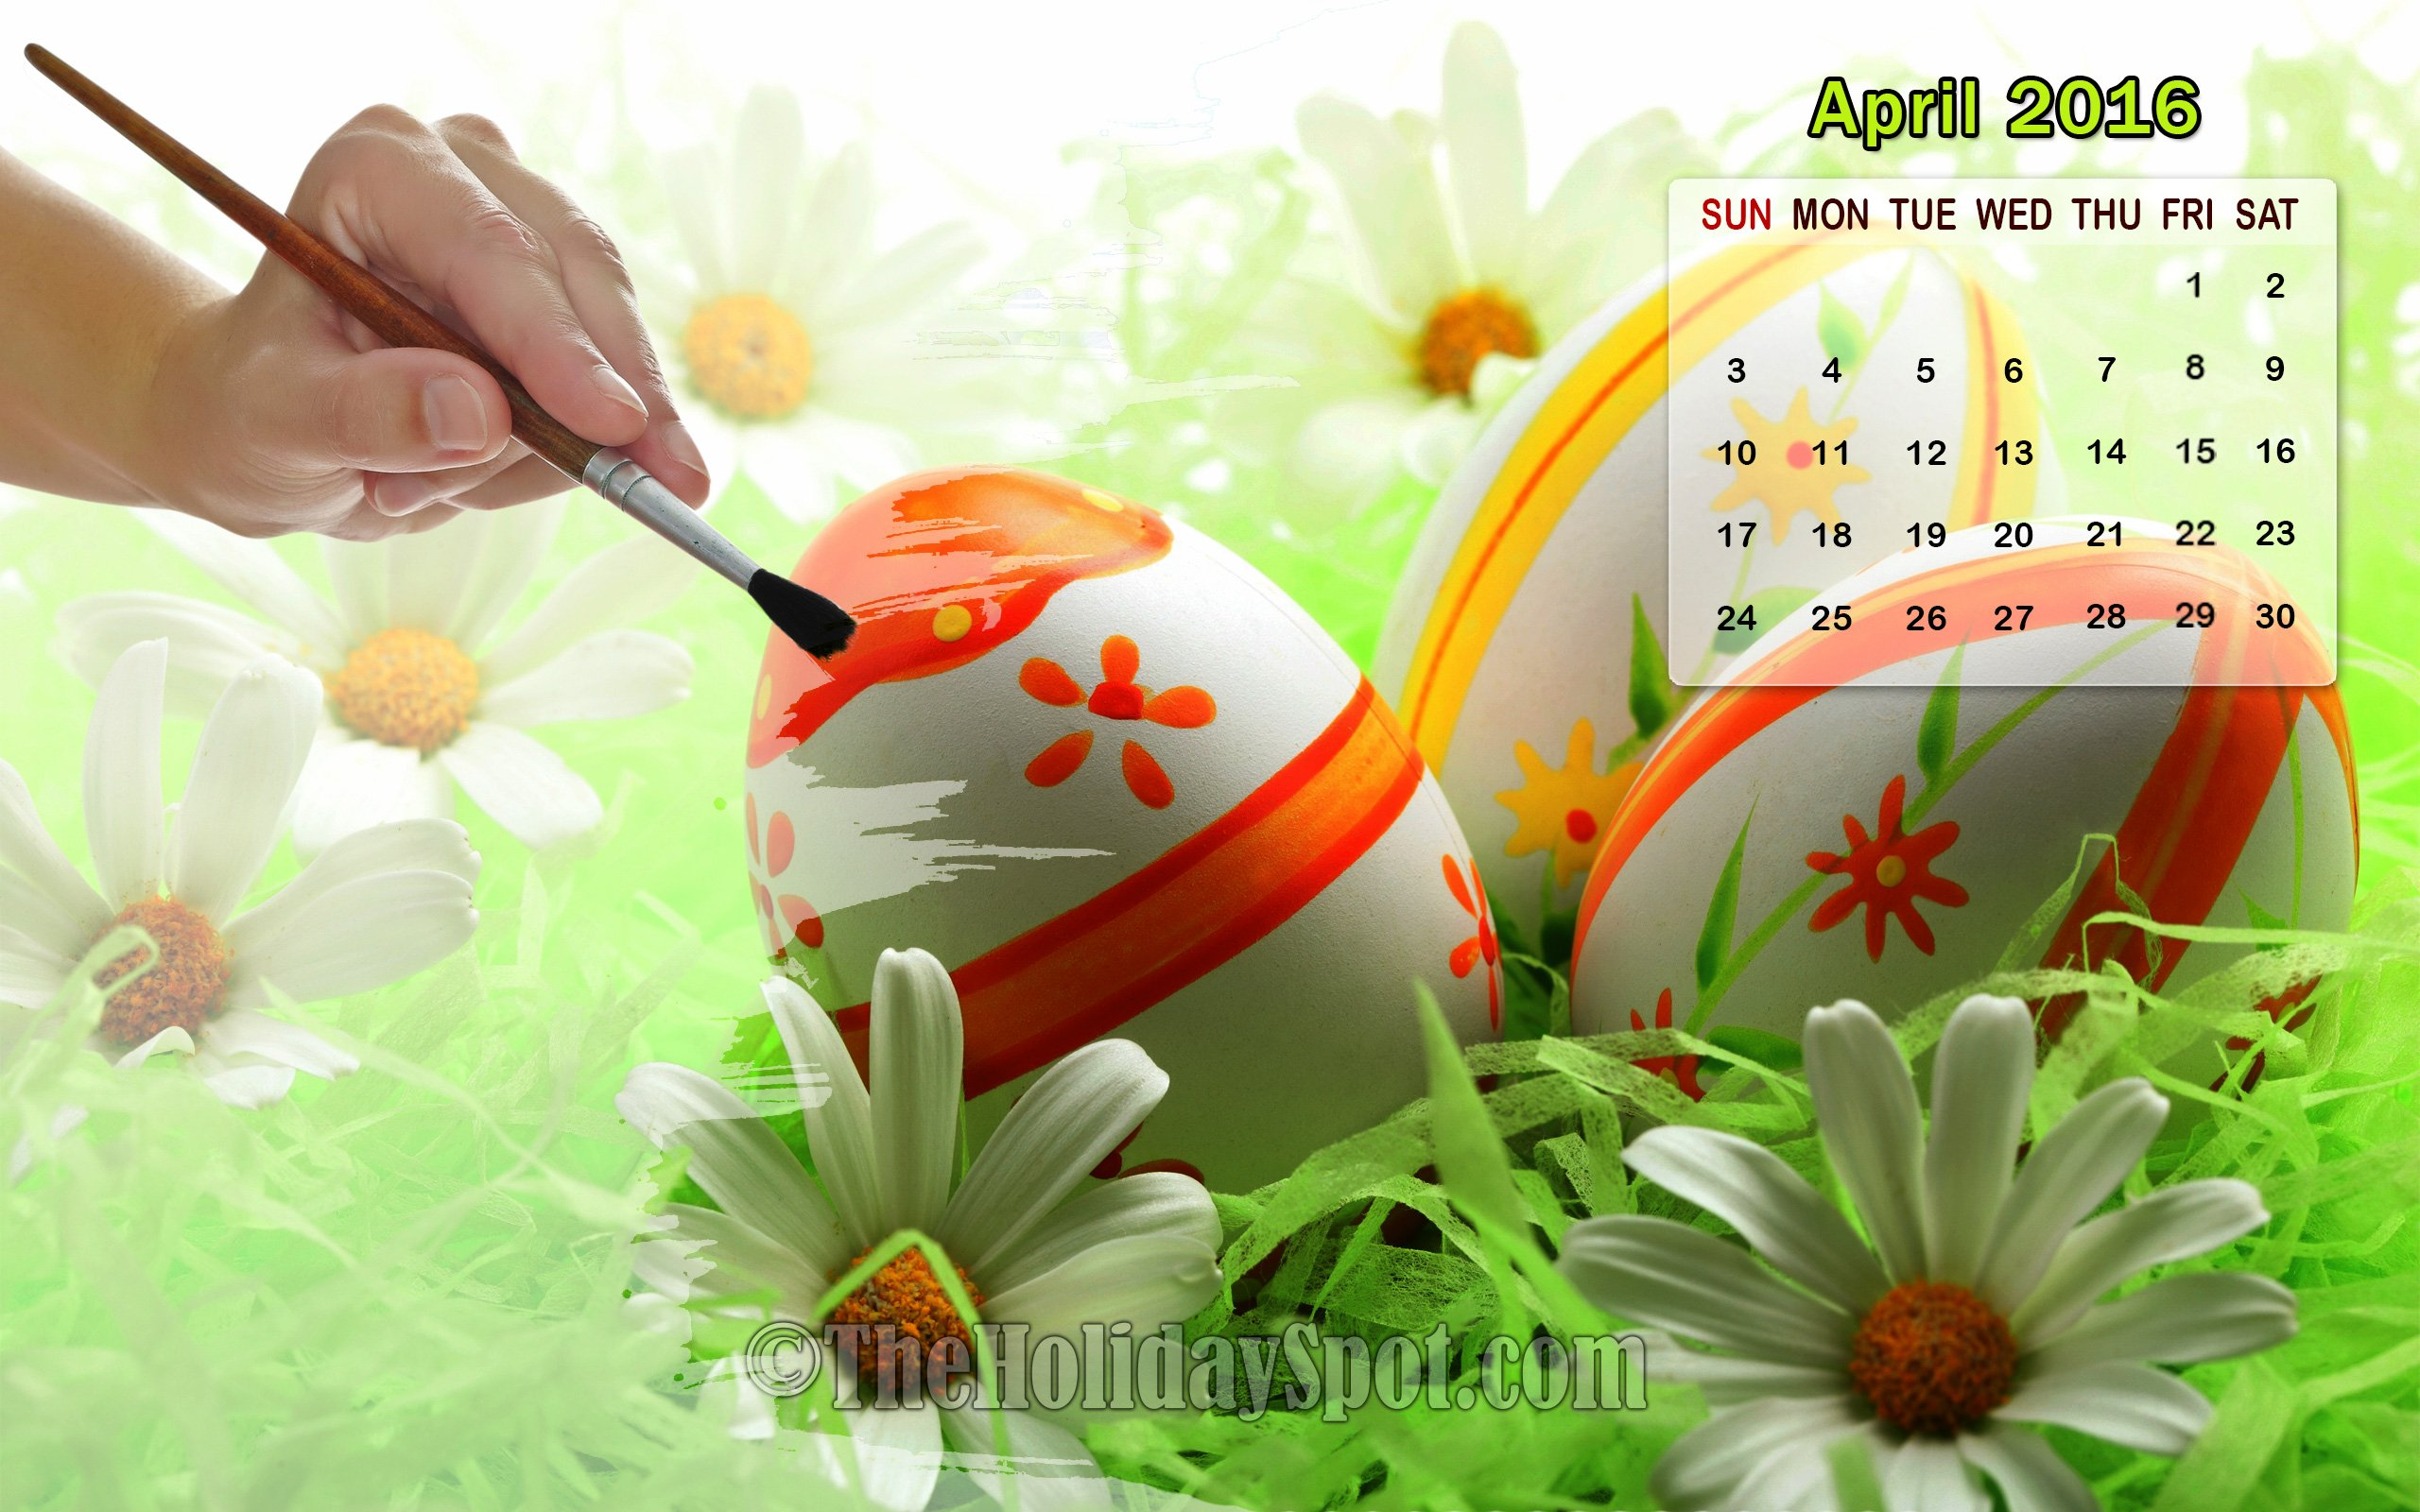 April 2016 Calendar Wallpaper Images 2560x1600